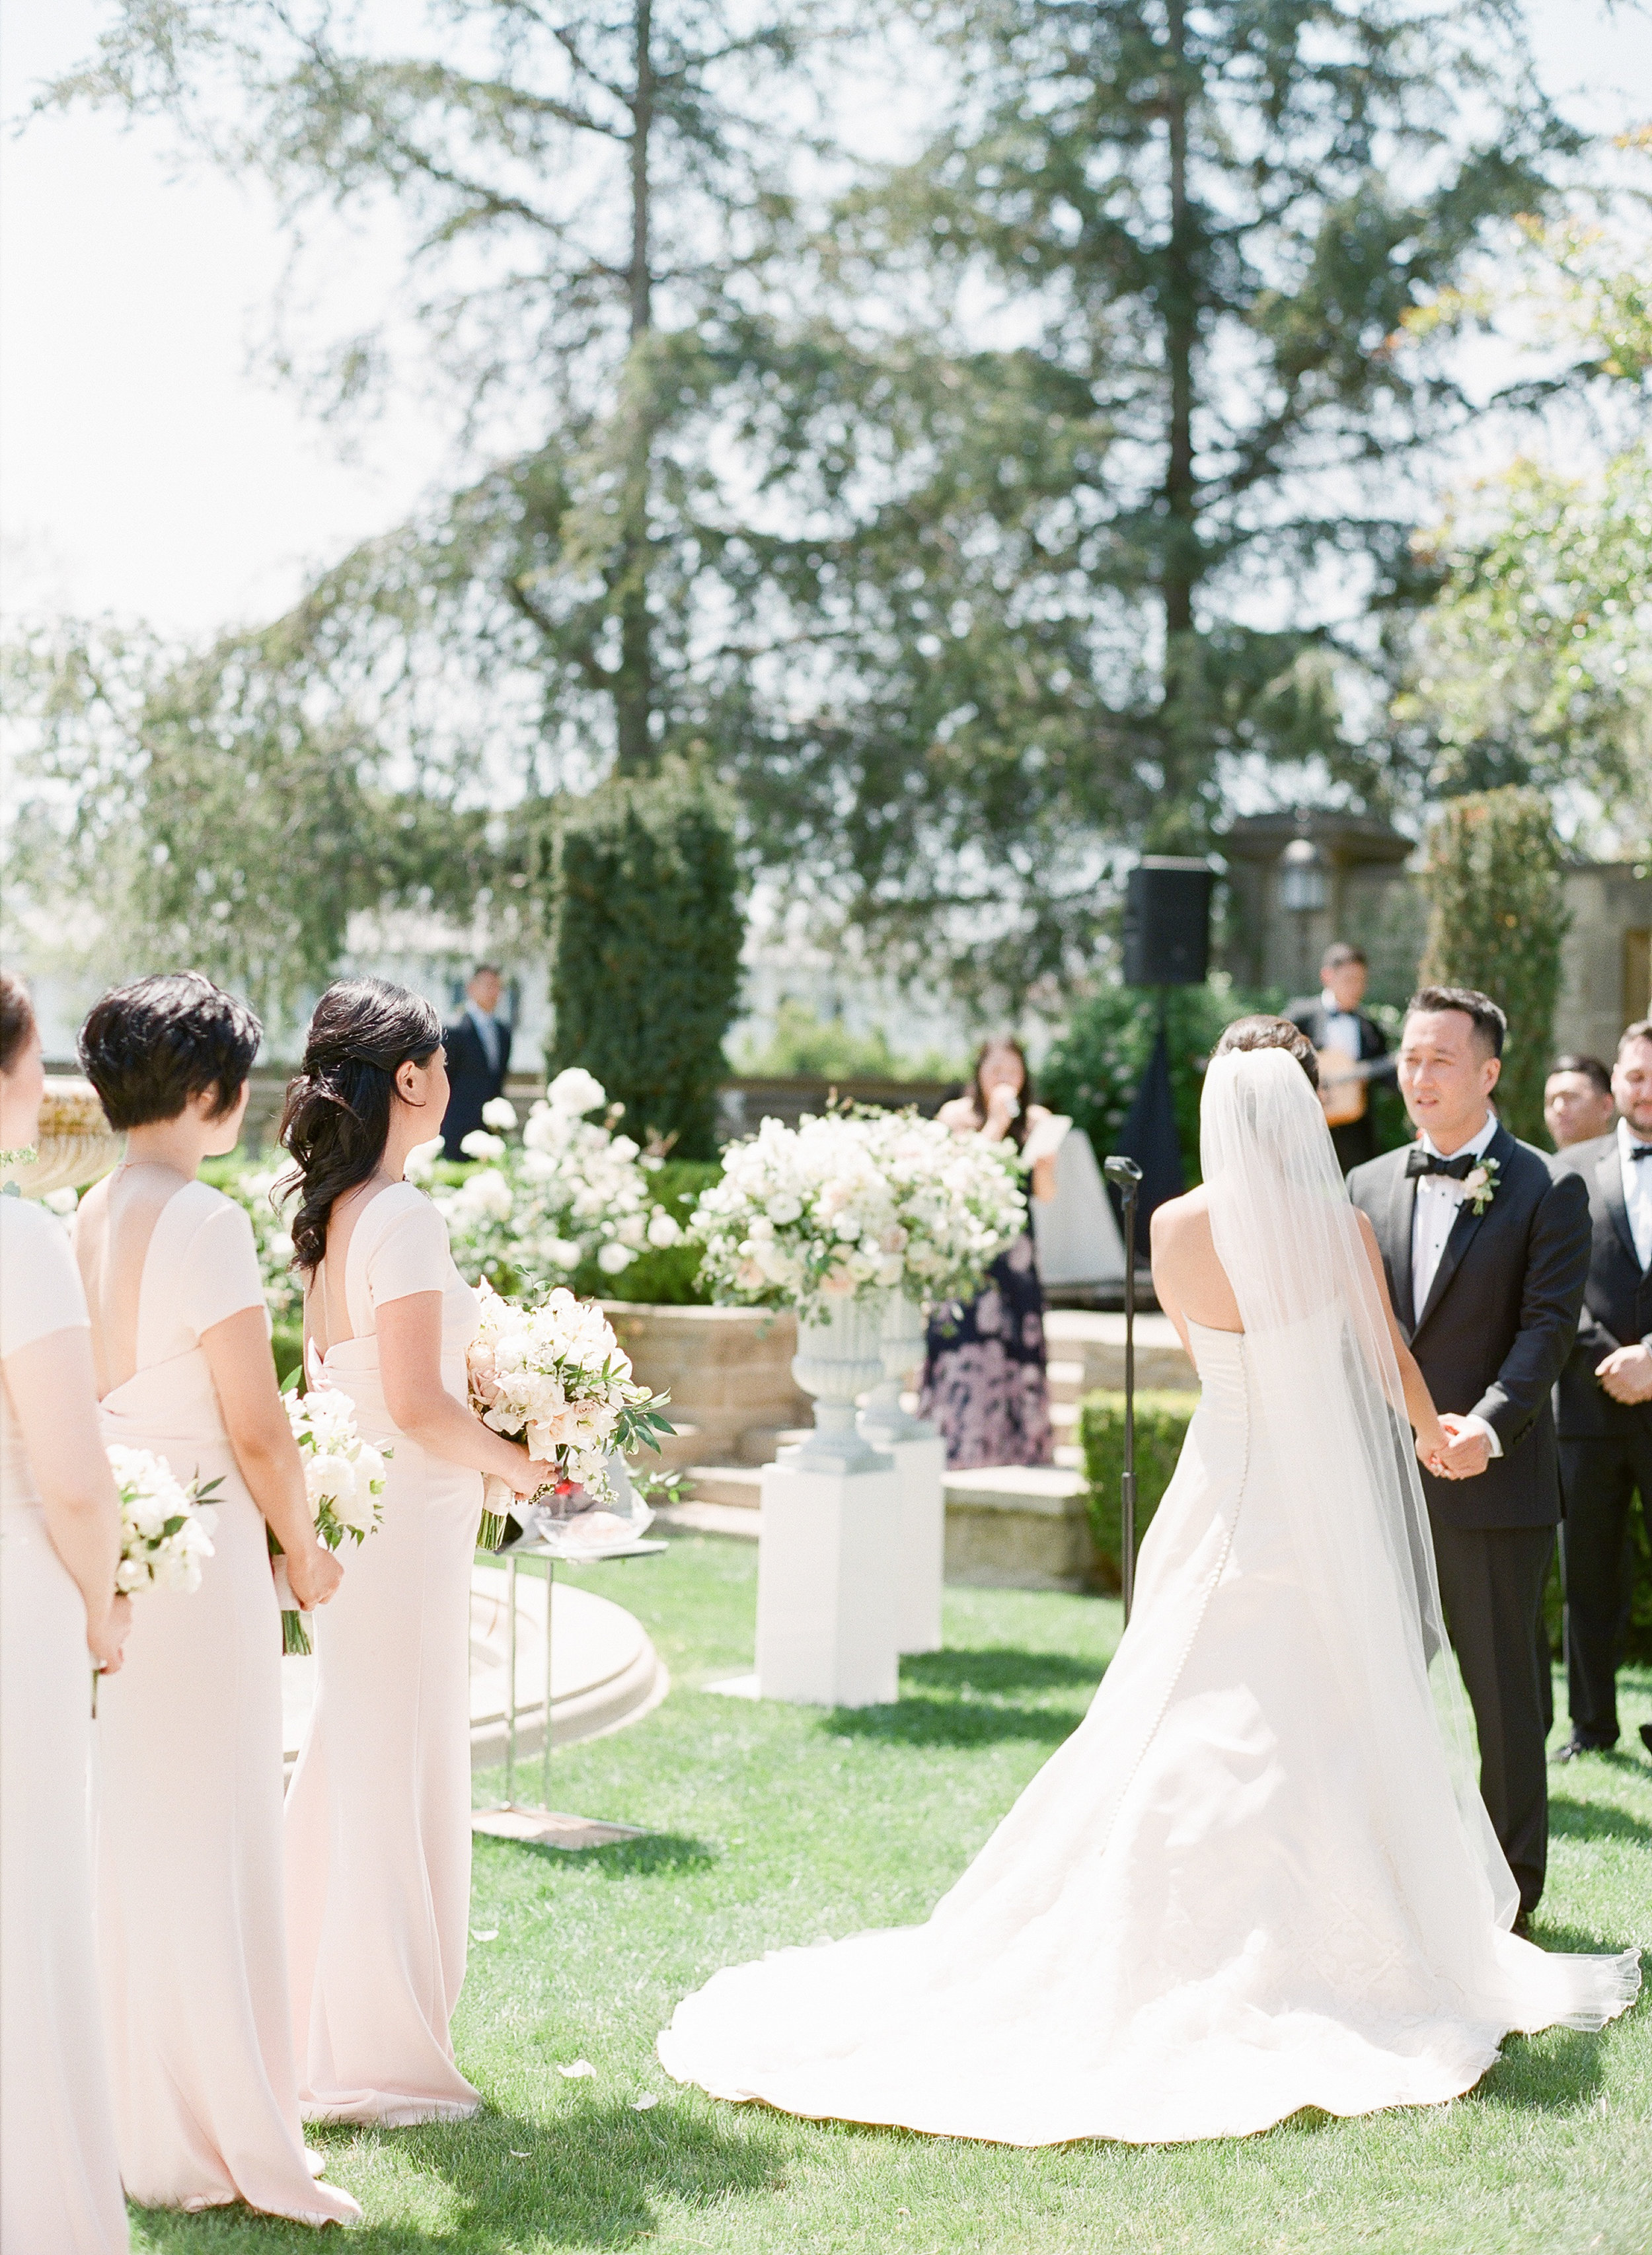 Greystone-Mansion-Wedding-Kristina-Adams-387.jpg